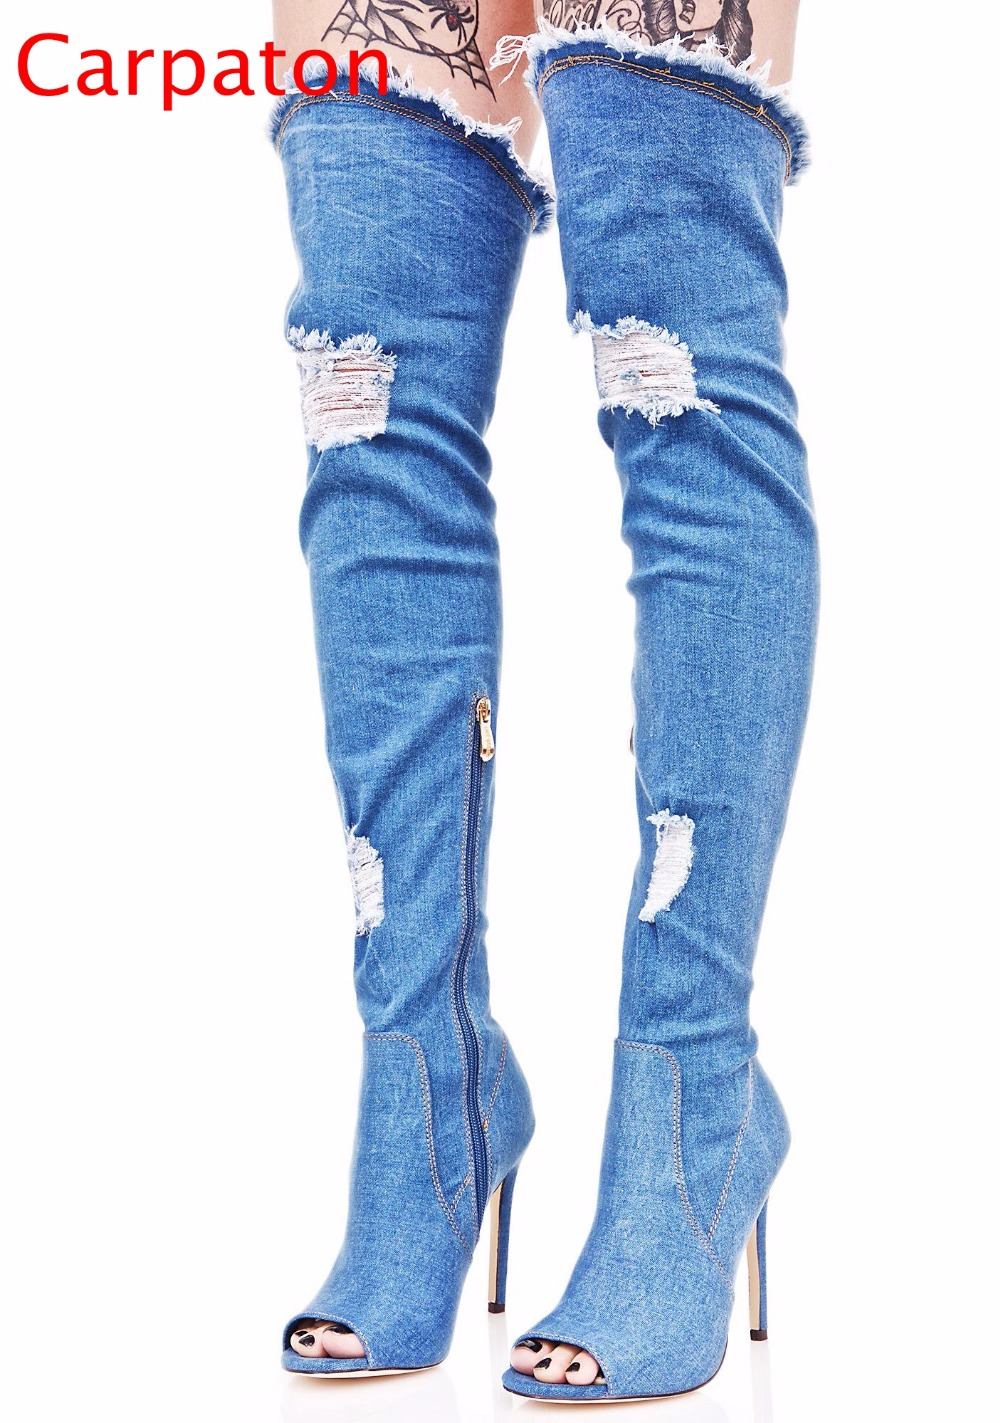 Hot Sale  Women Denim Long Thigh High Heel Boots Sexy Peep Toe  Boots Summer Over Knee Cowboy Cool Holes Sandals Women Shoes fashion blue denim boots women over the knee boots point toe sexy belt decor crystal thigh high boot cowboy high heel long botas